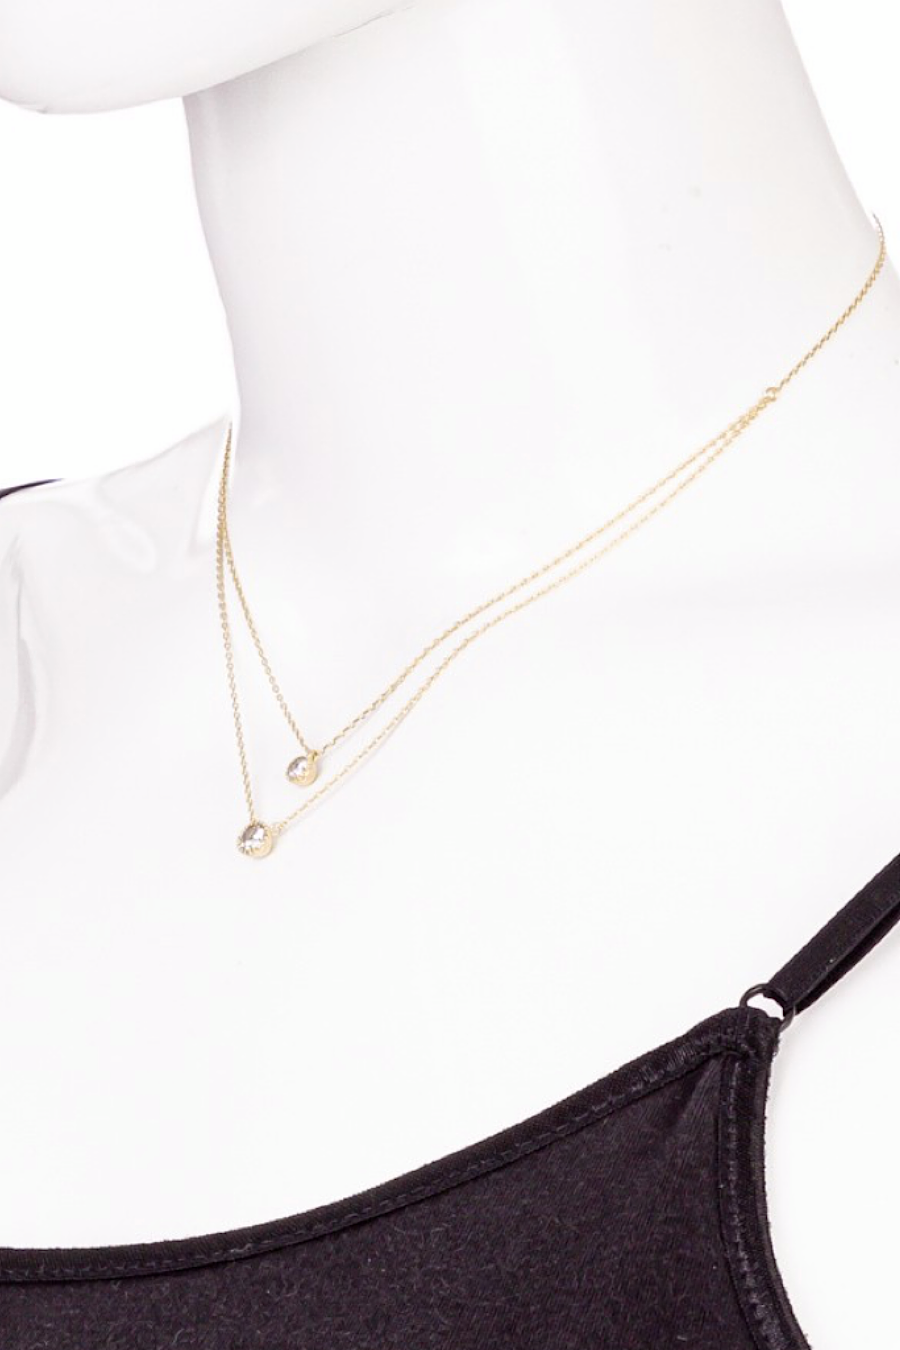 Dainty Stud Layered Necklace in Gold or Silver